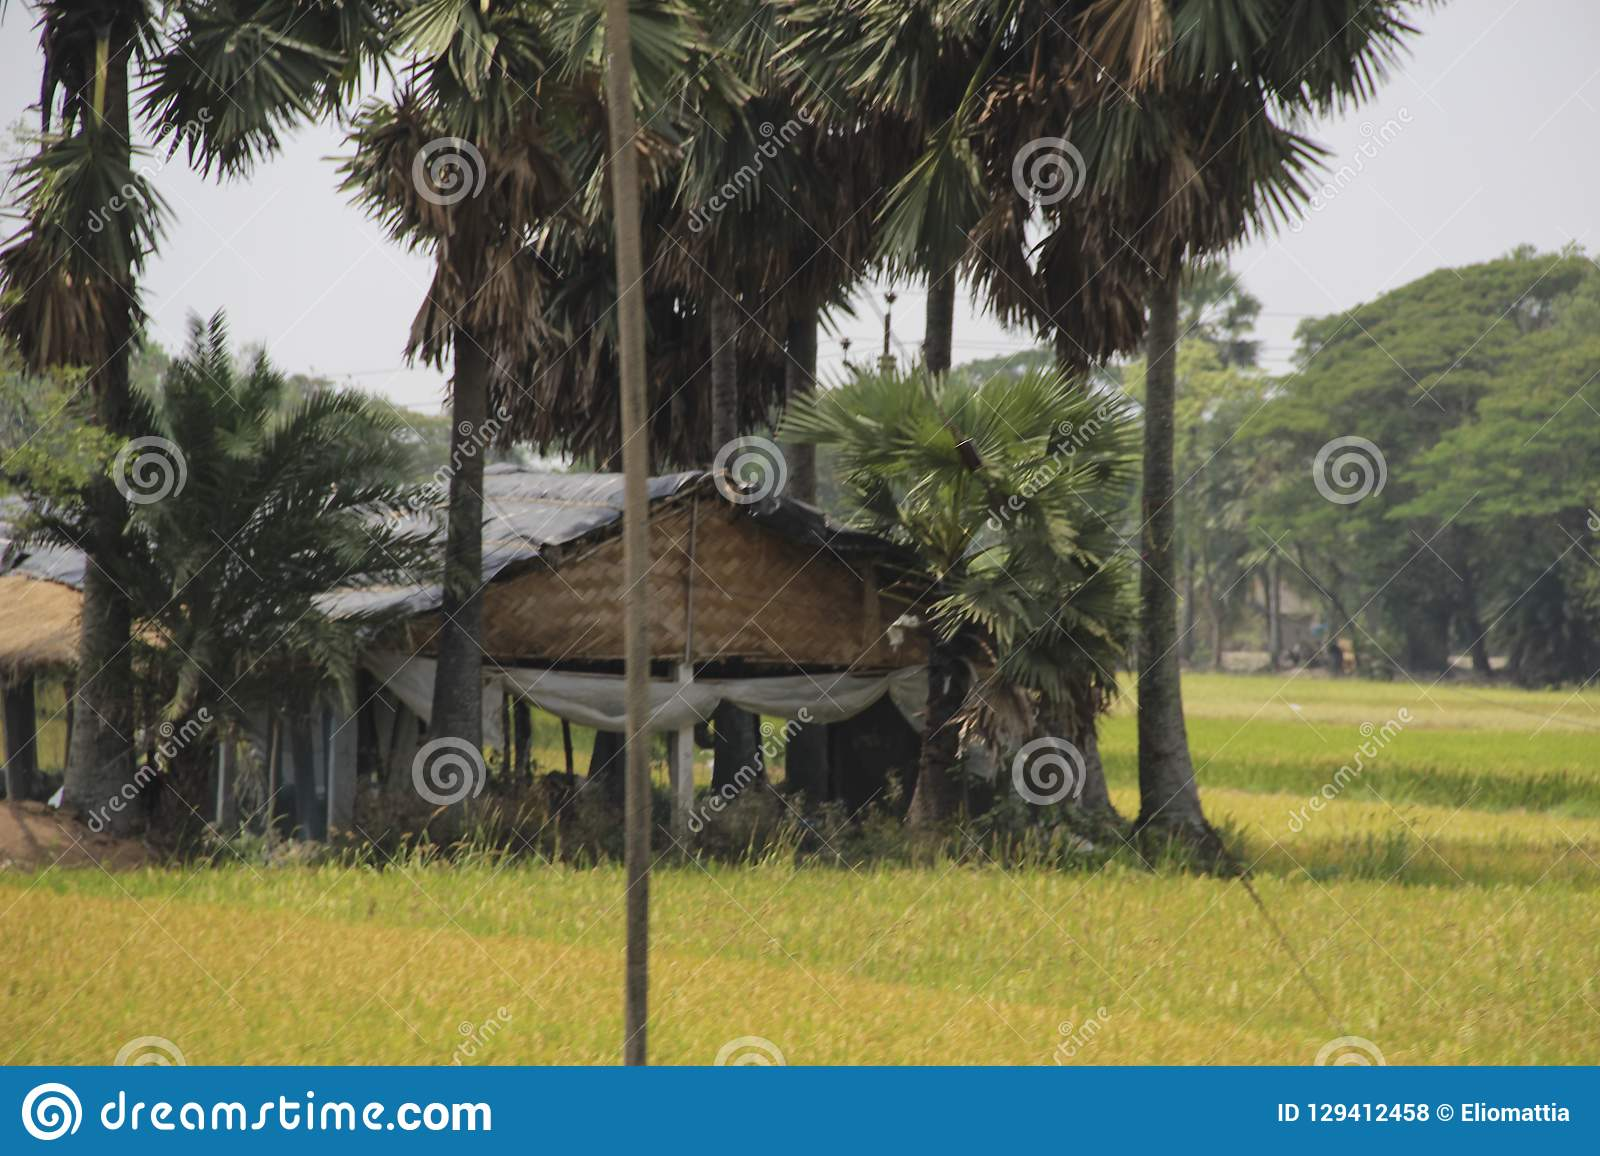 Palm trees and huts in Sundarbans national park, famous for Royal Bengal Tiger